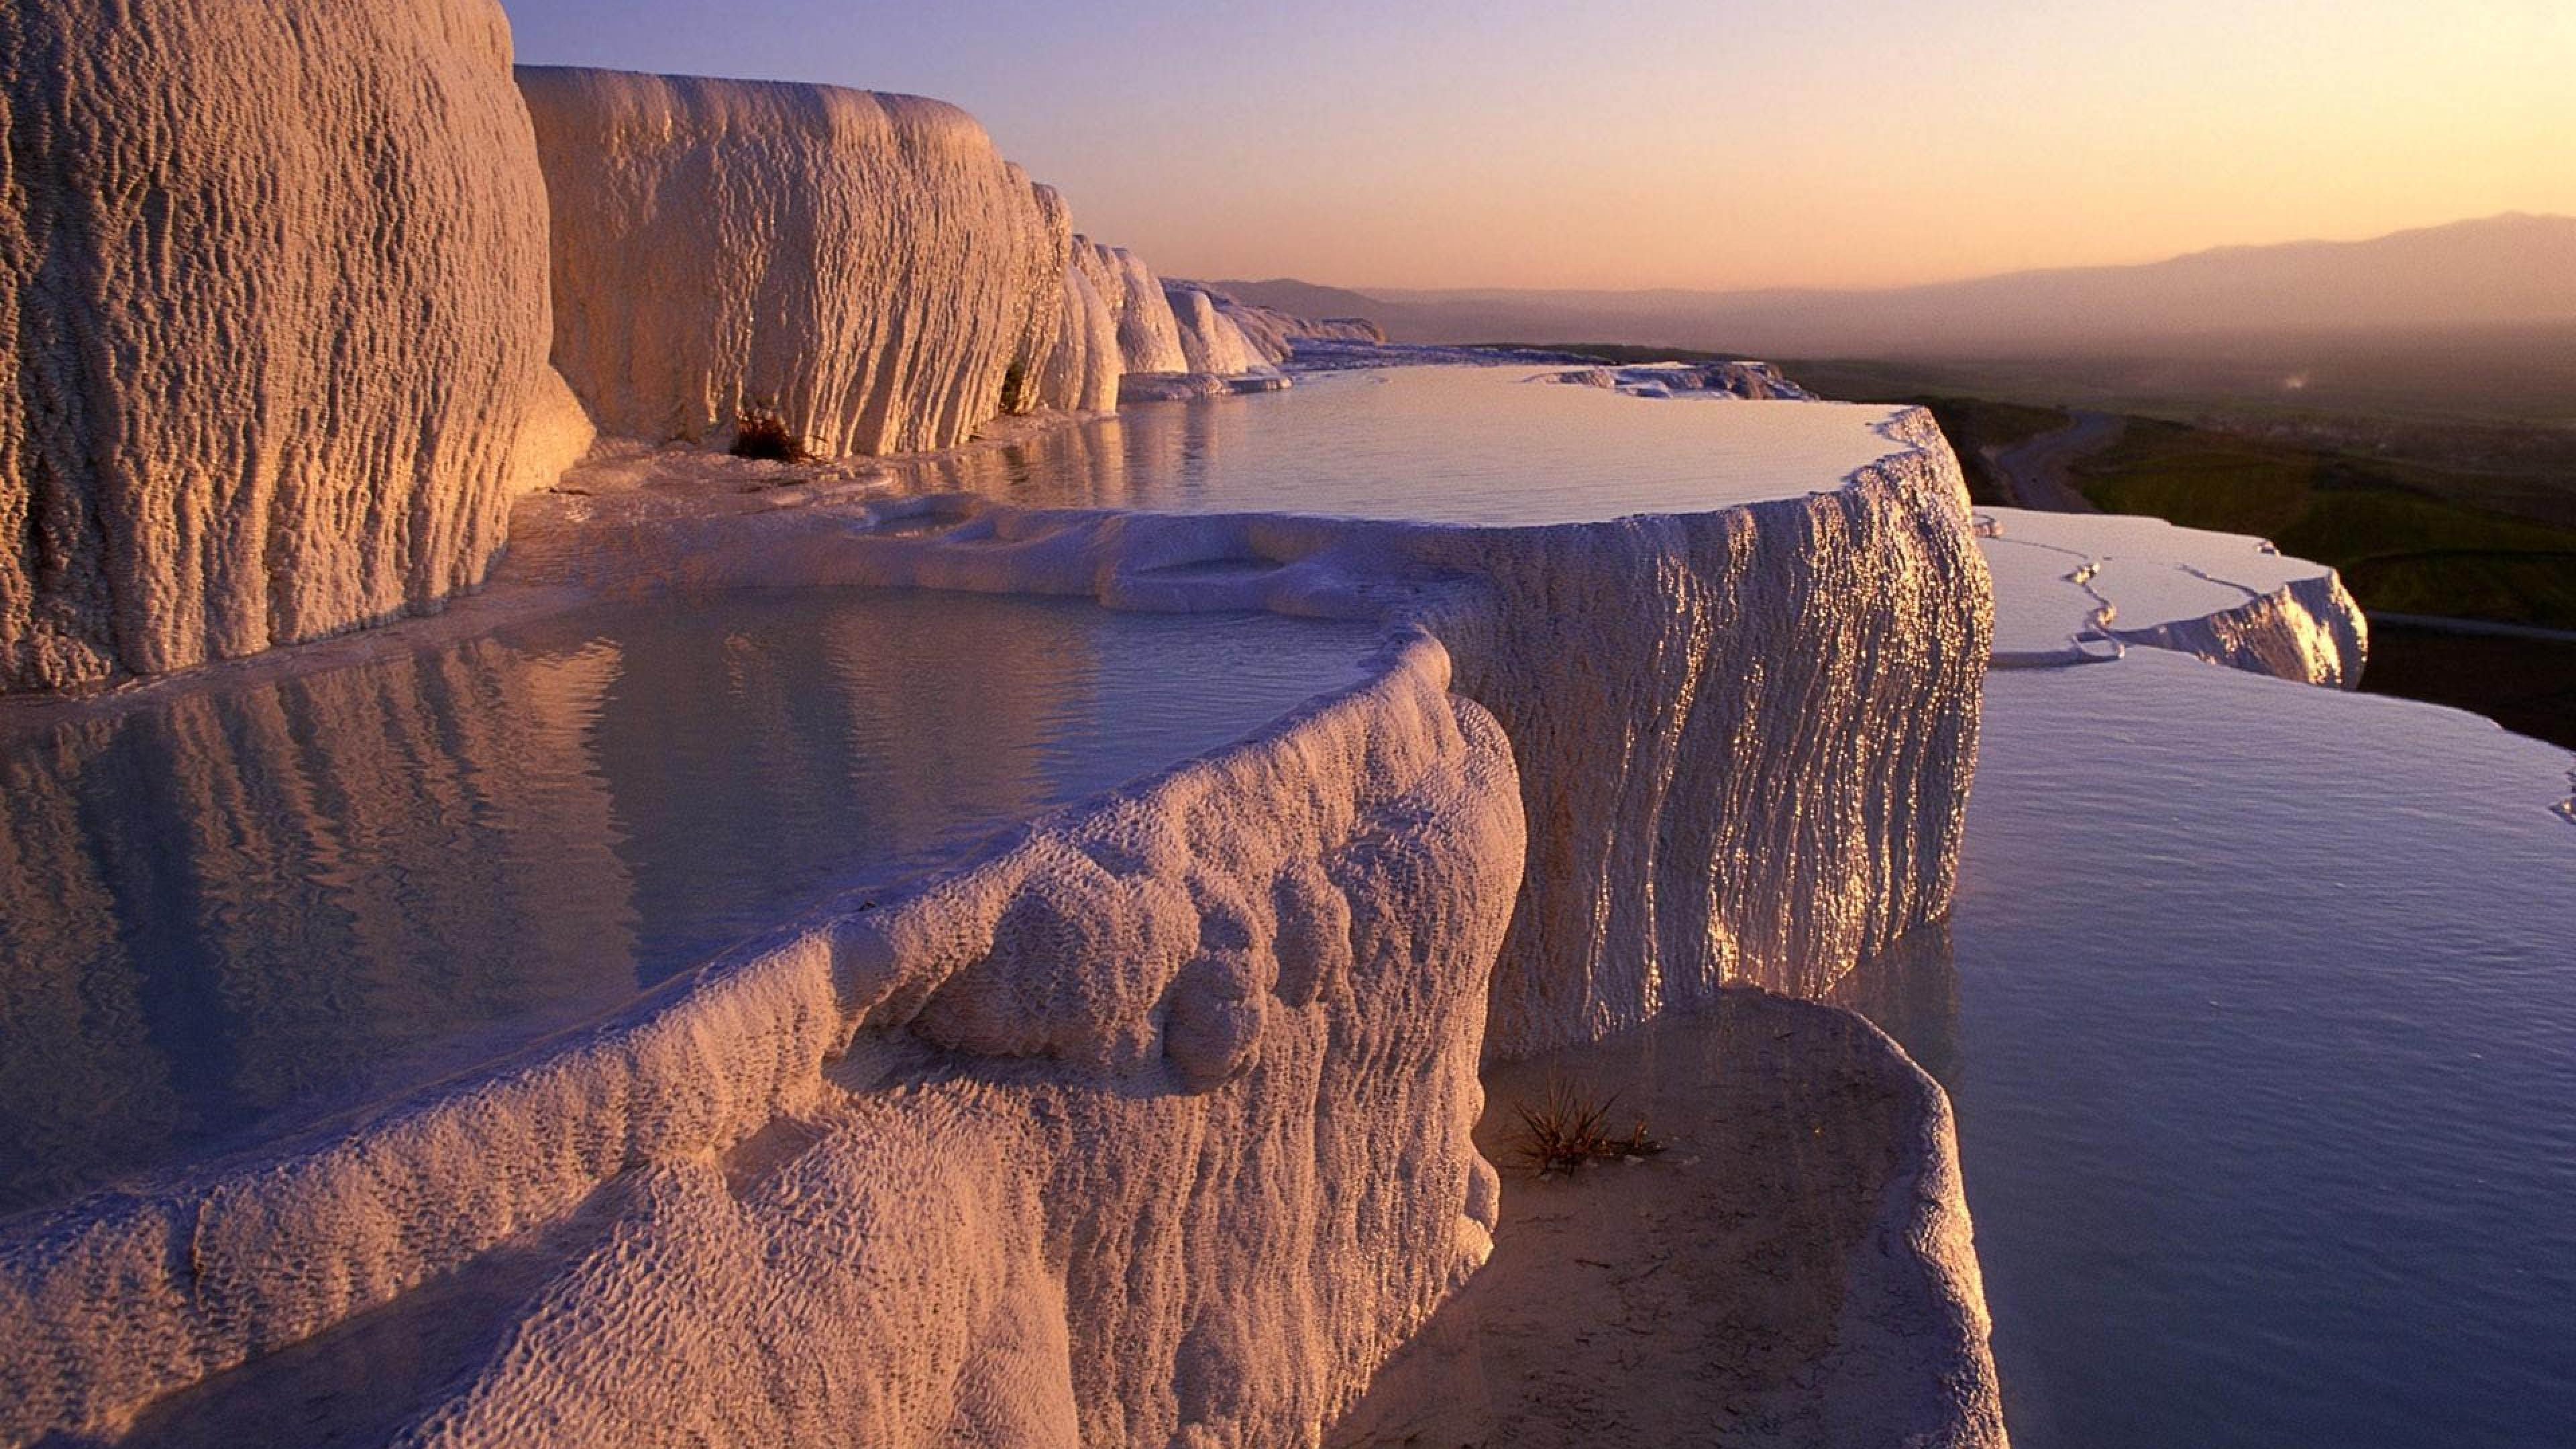 Hd Backgroumds: Pamukkale HD Wallpapers